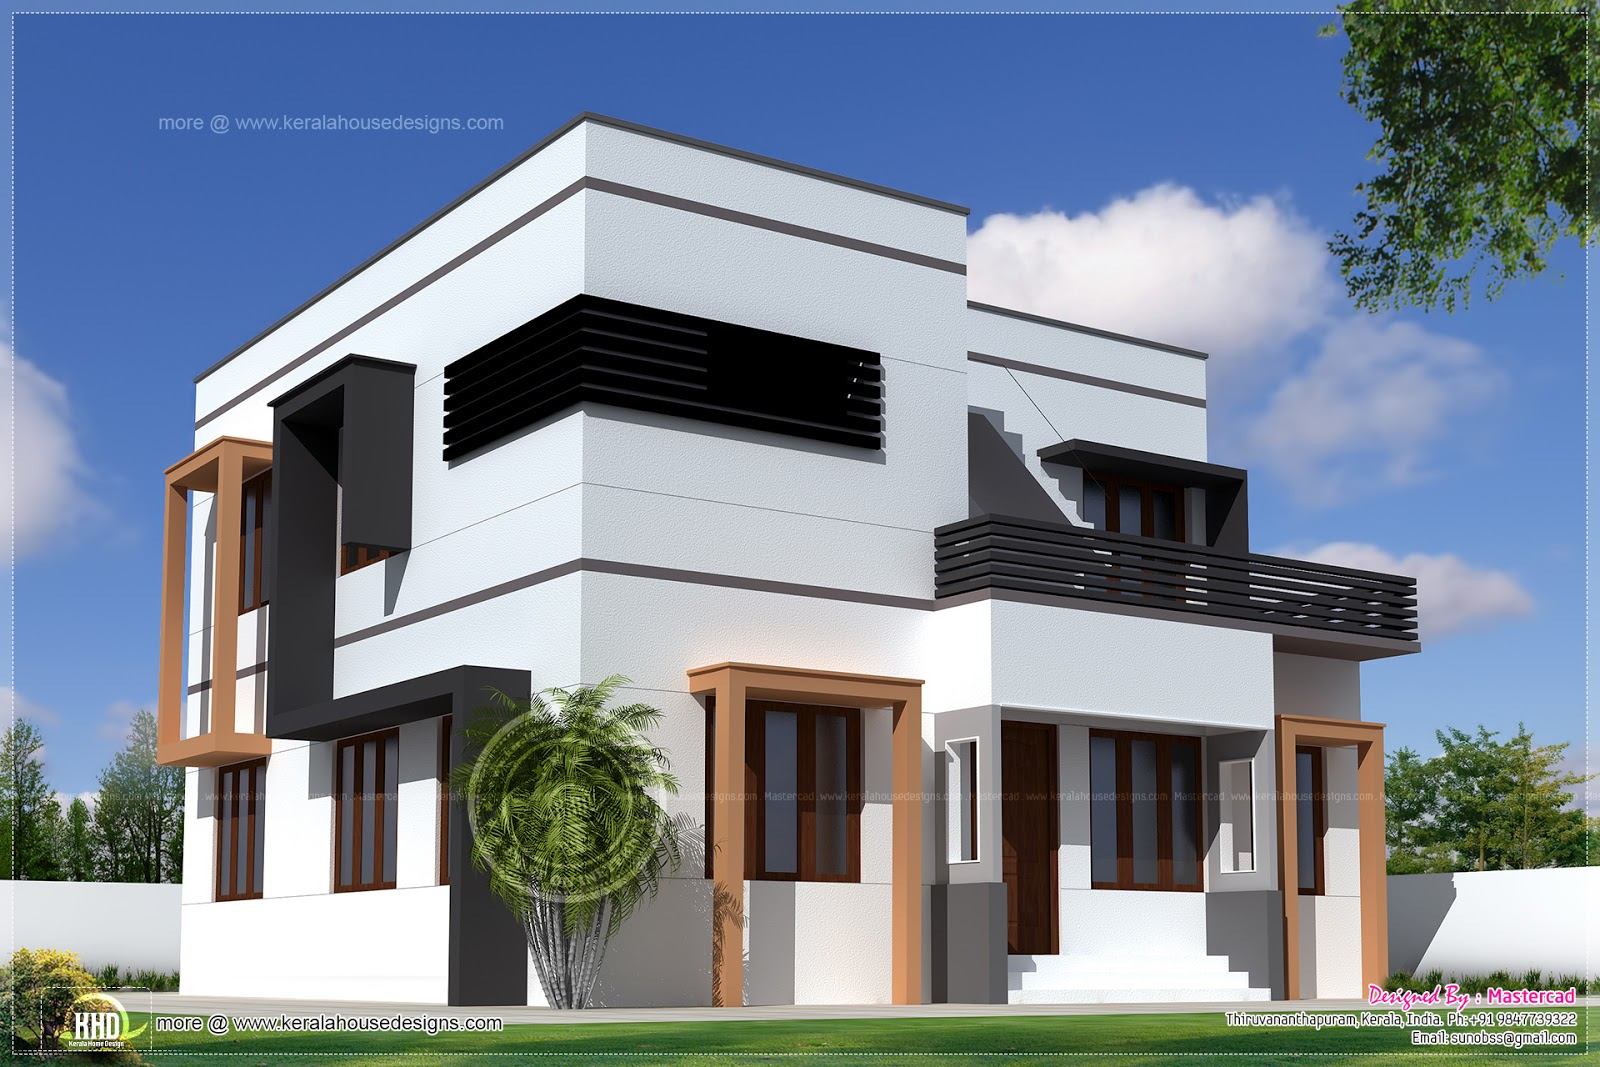 1627 square feet modern villa exterior | House Design Plans